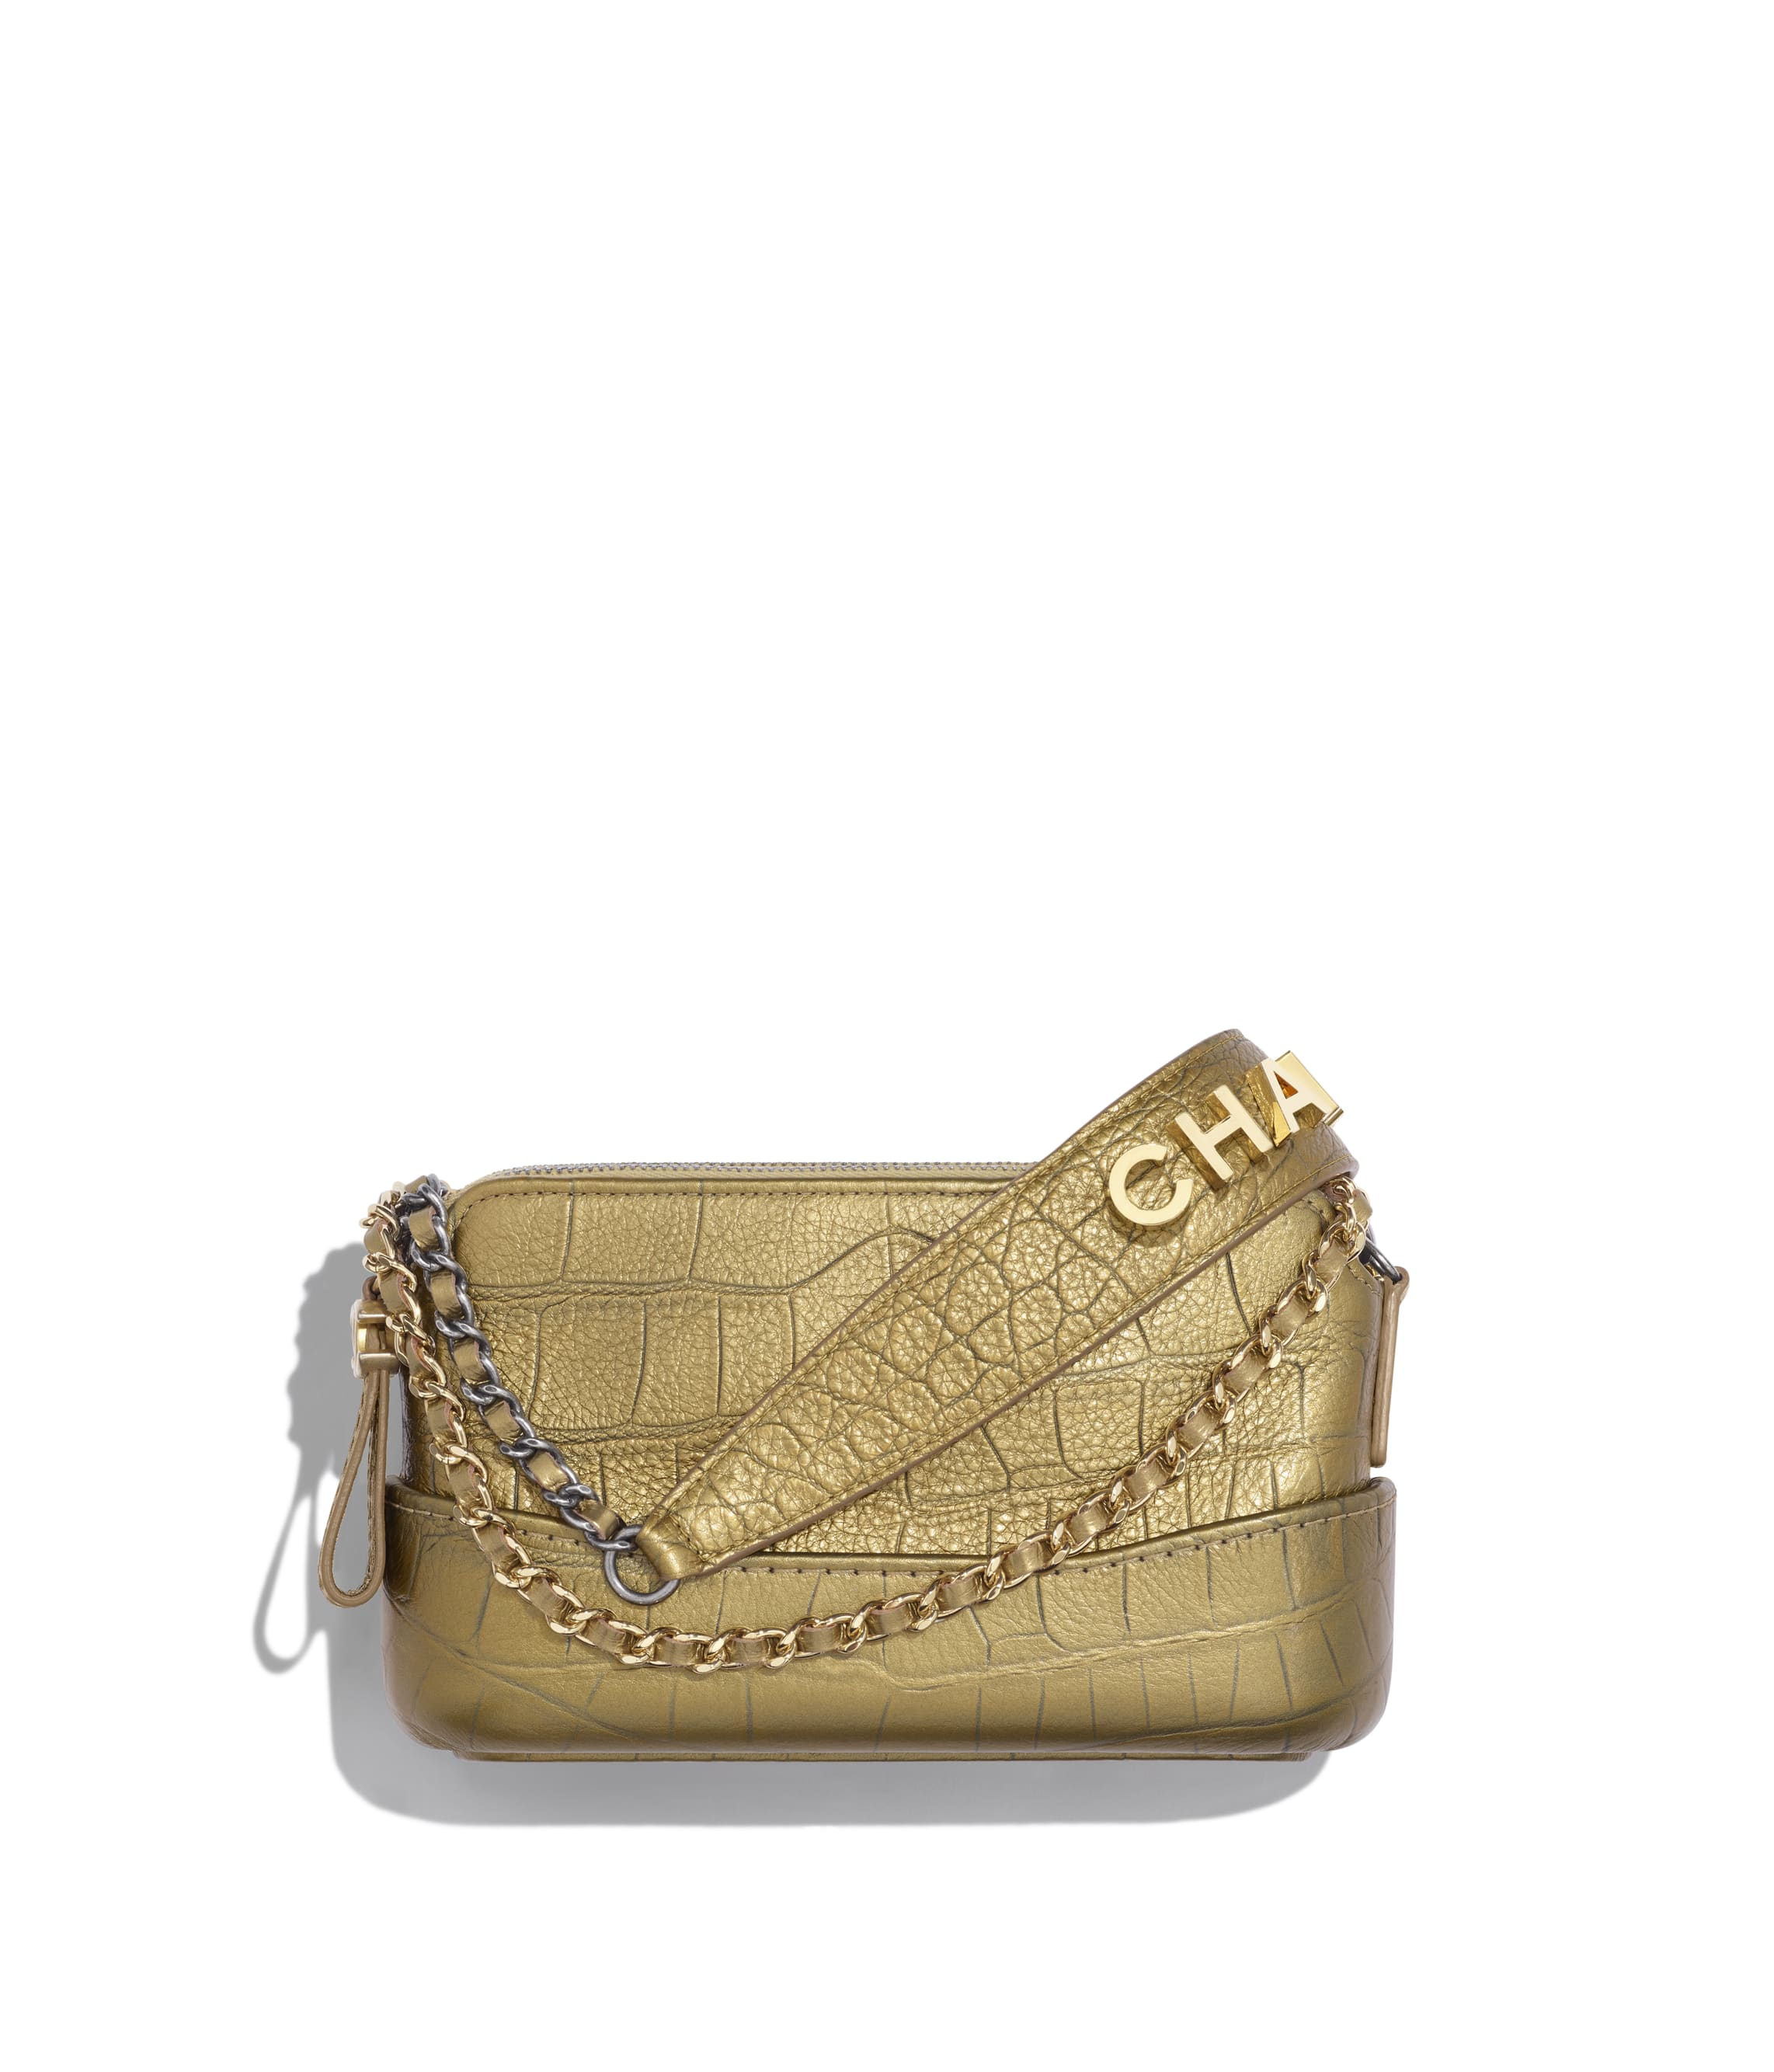 da8fd1ac9895 Small leather goods - CHANEL